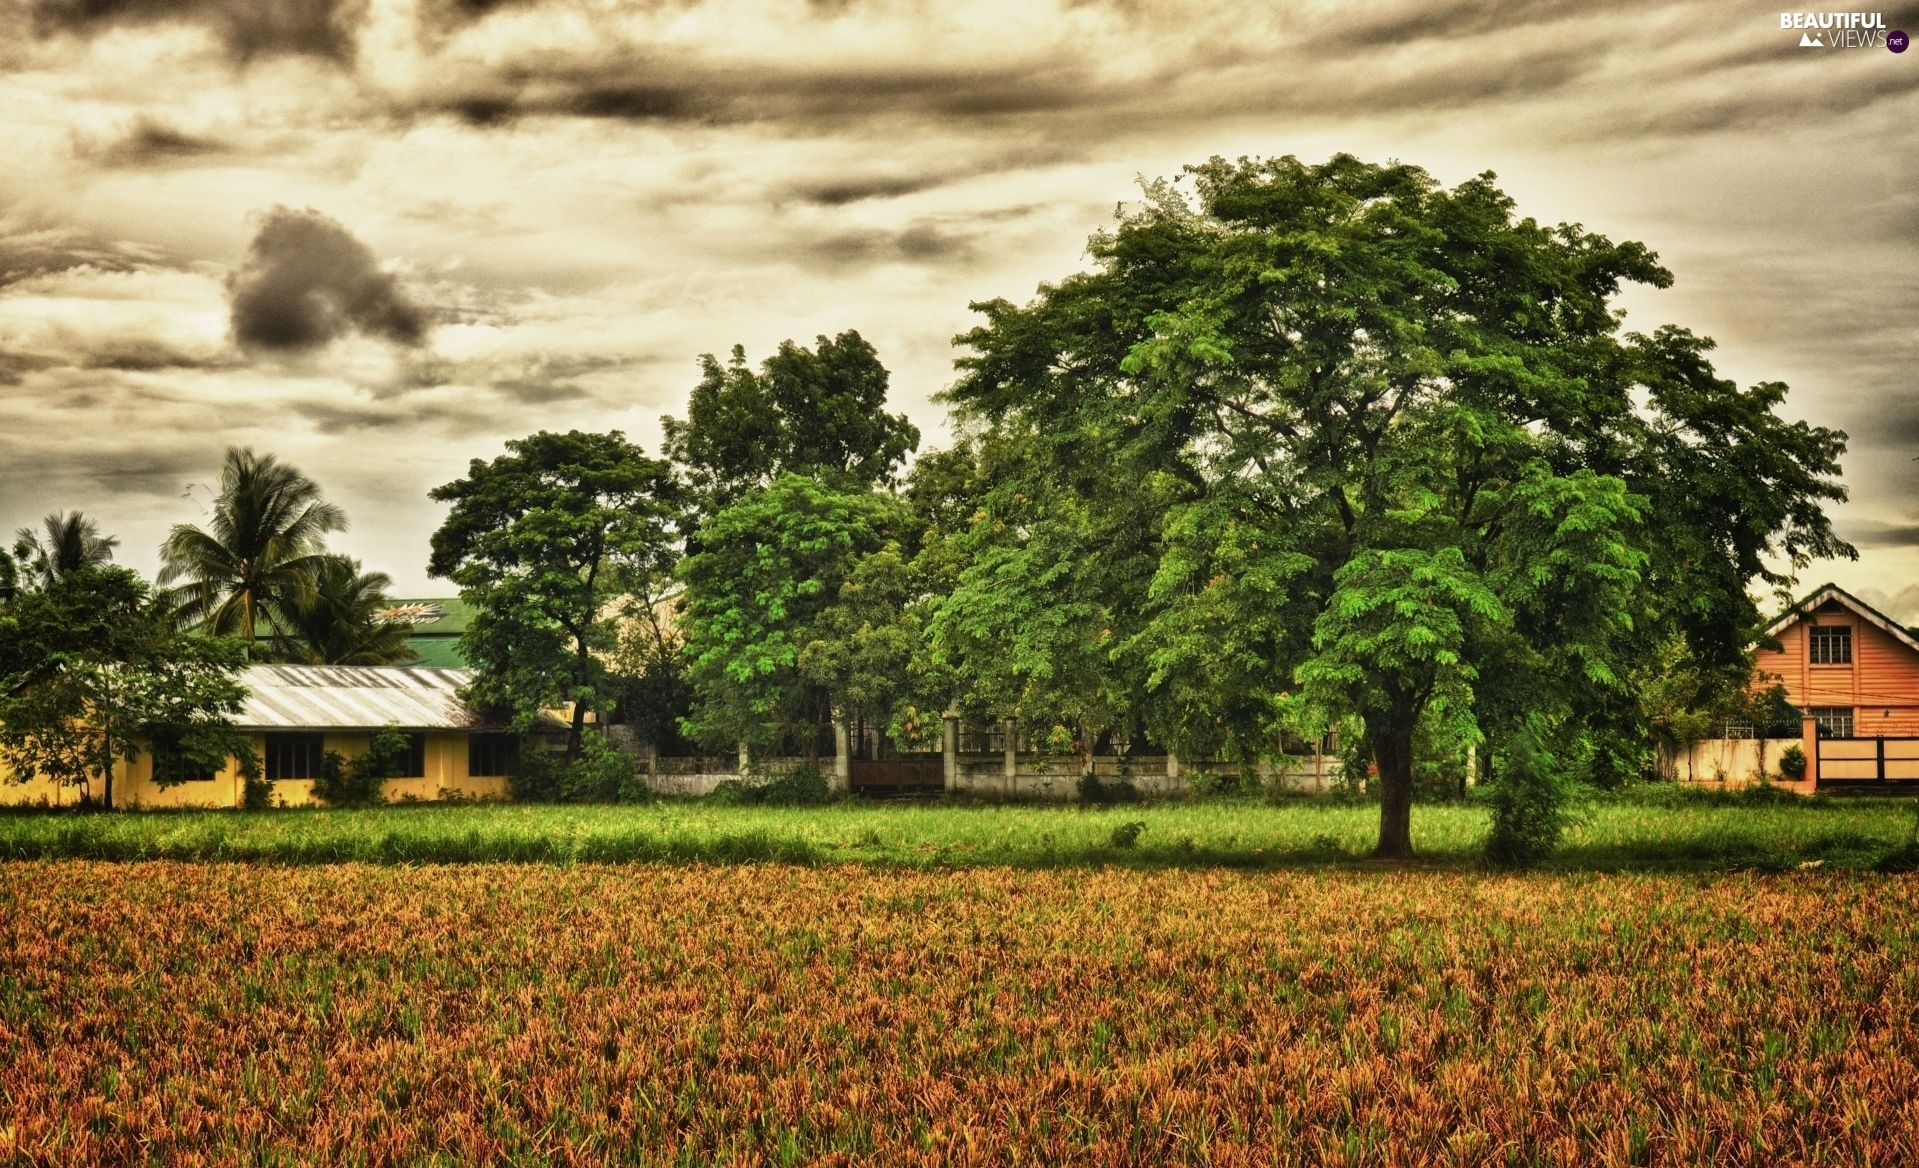 trees, clouds, farm, viewes